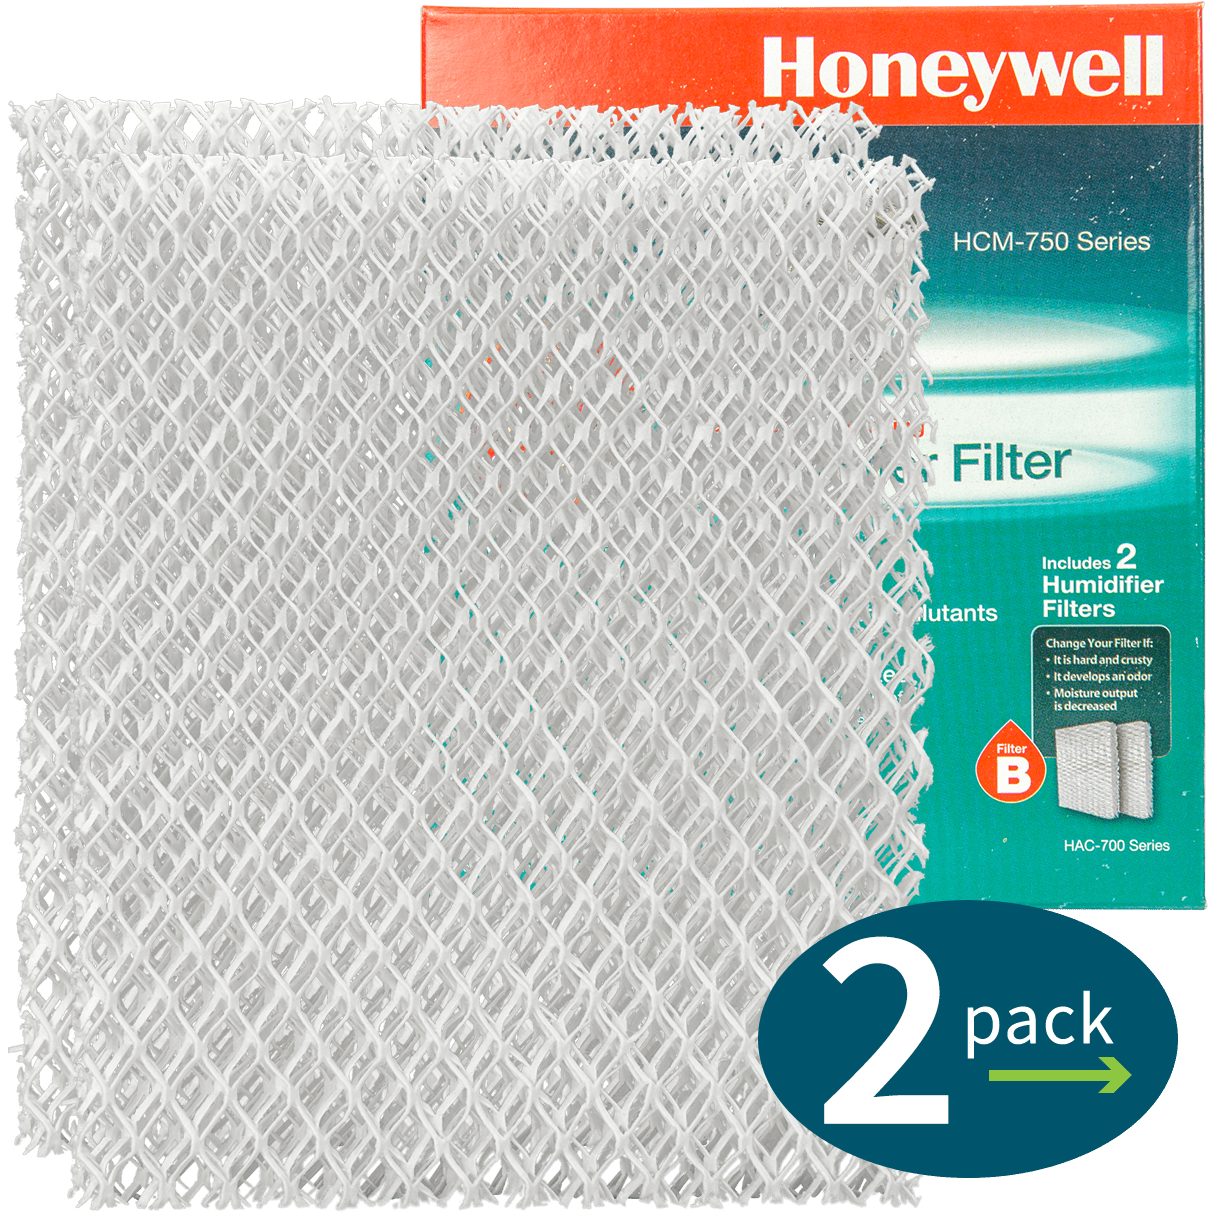 Honeywell Replacement Filter B (HAC-700) ho3161